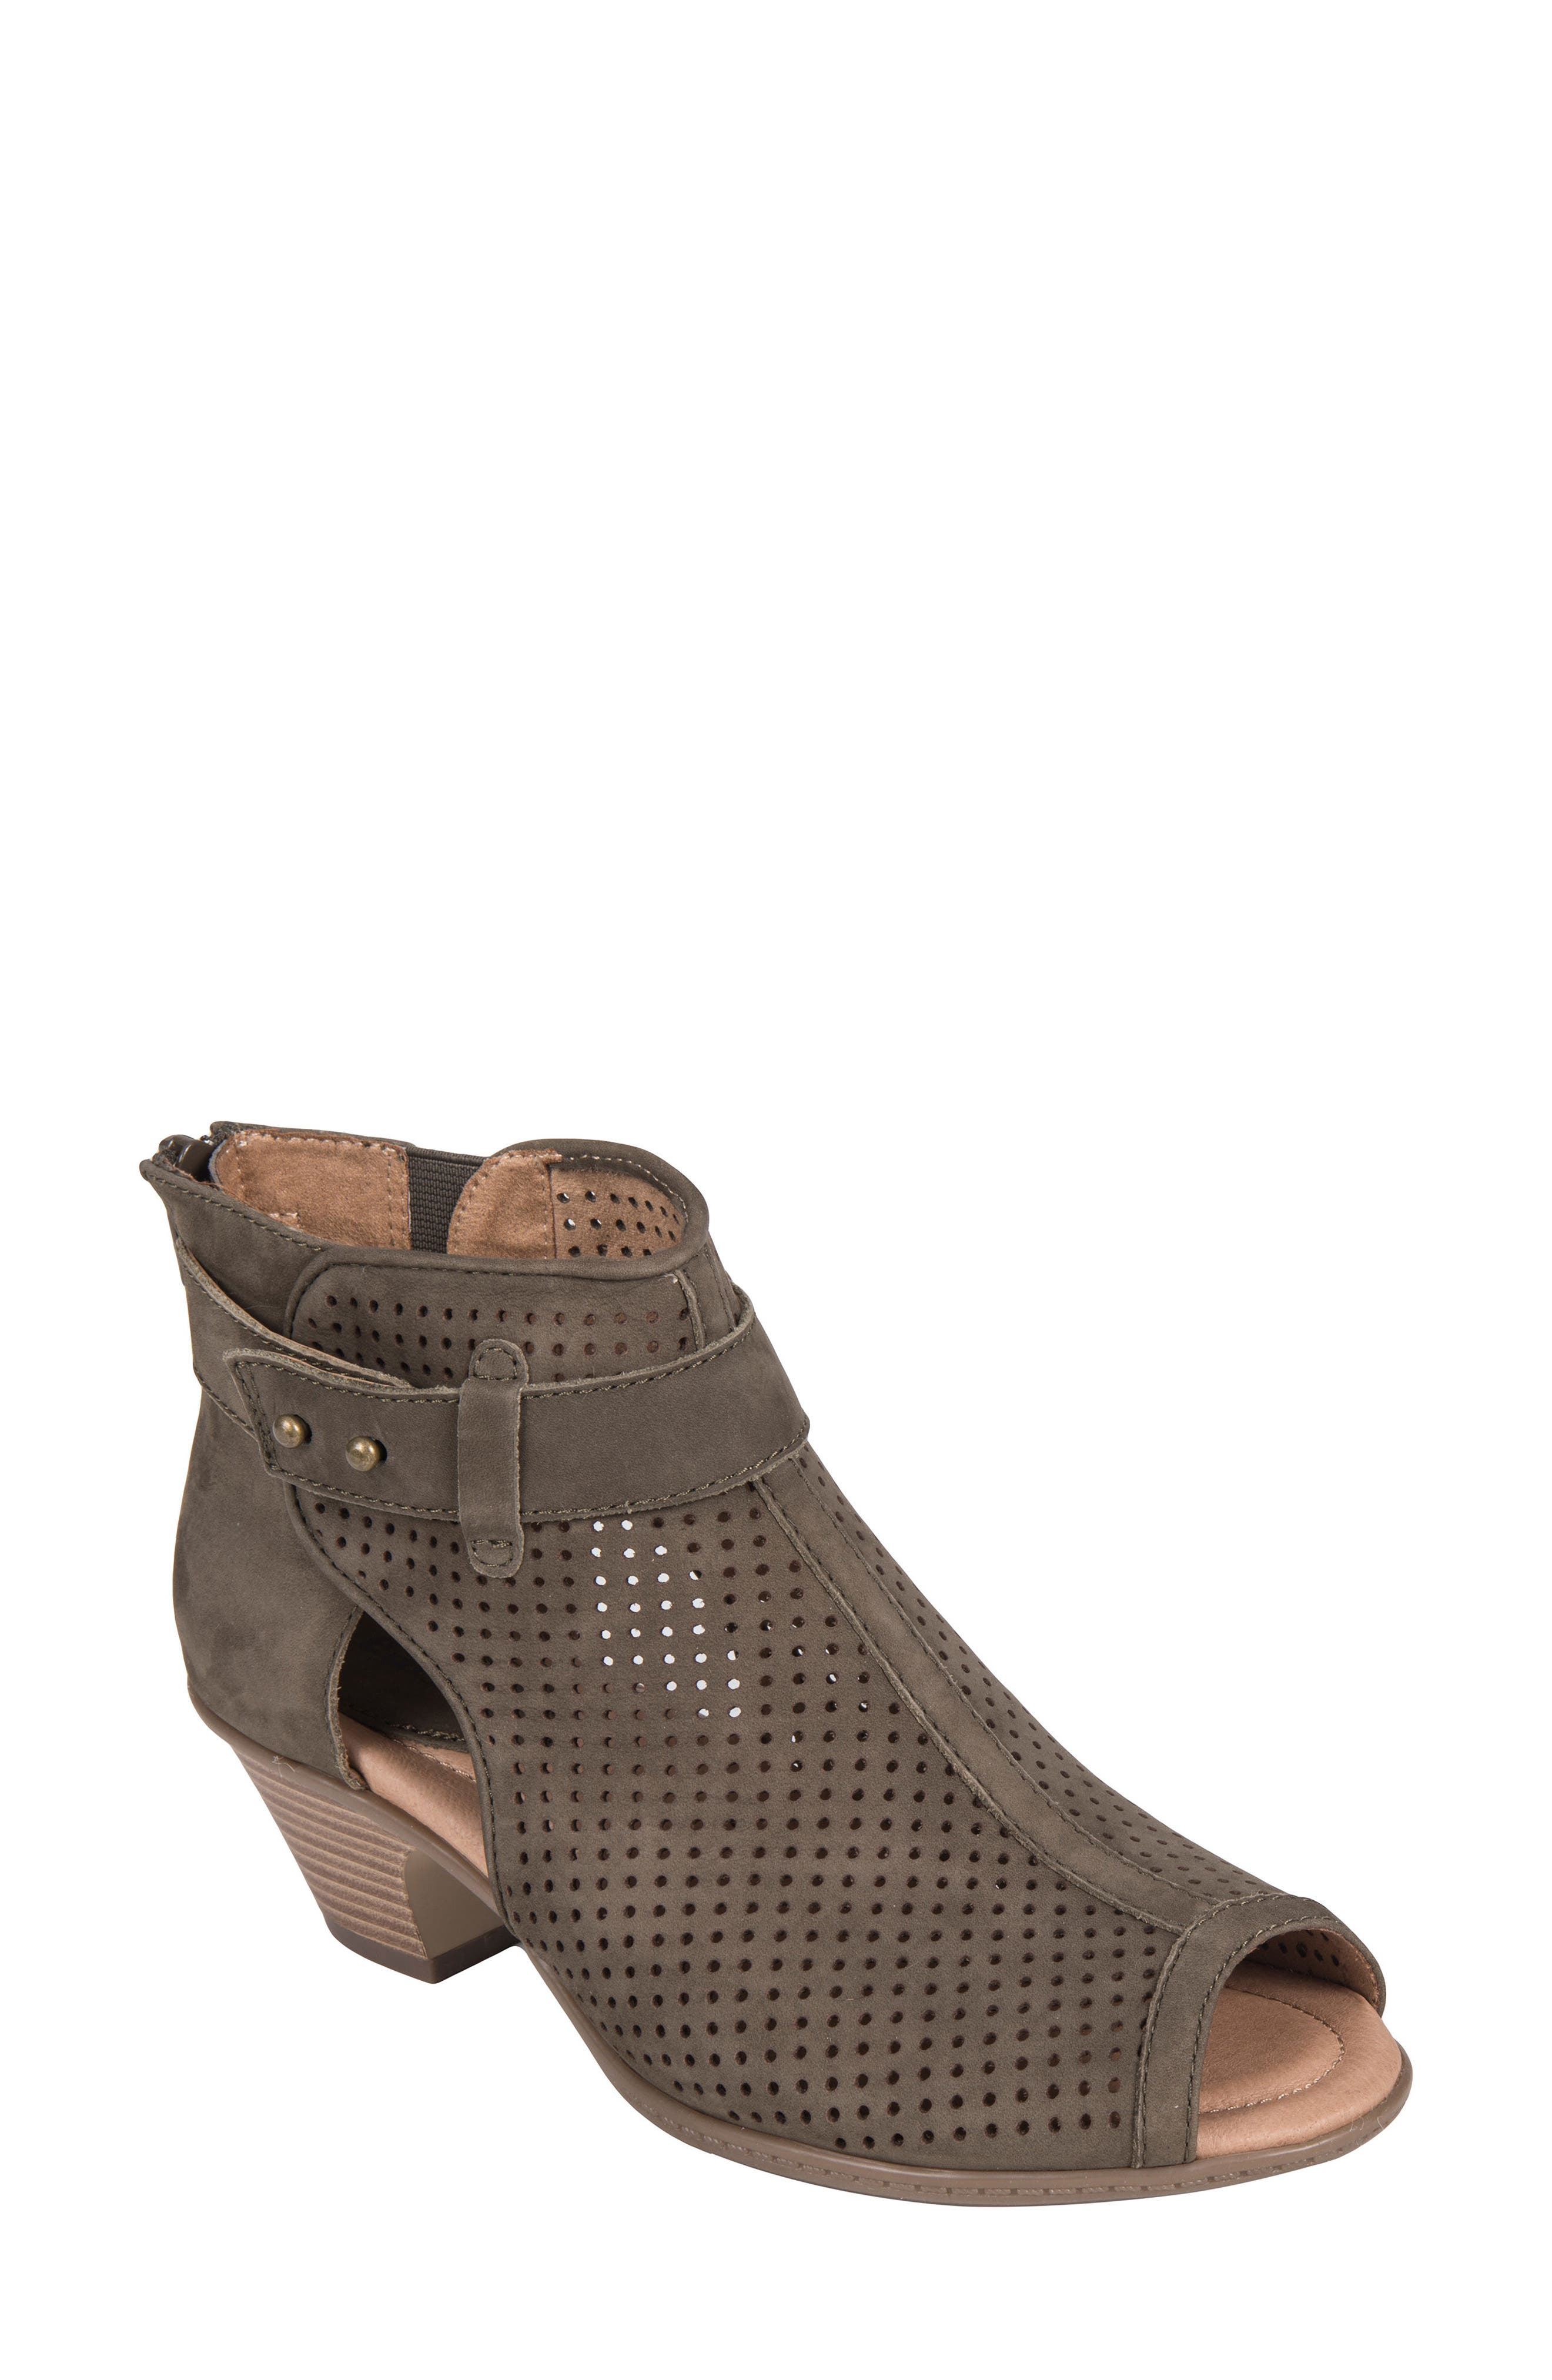 Intrepid Peep Toe Bootie,                             Main thumbnail 1, color,                             DARK OLIVE NUBUCK